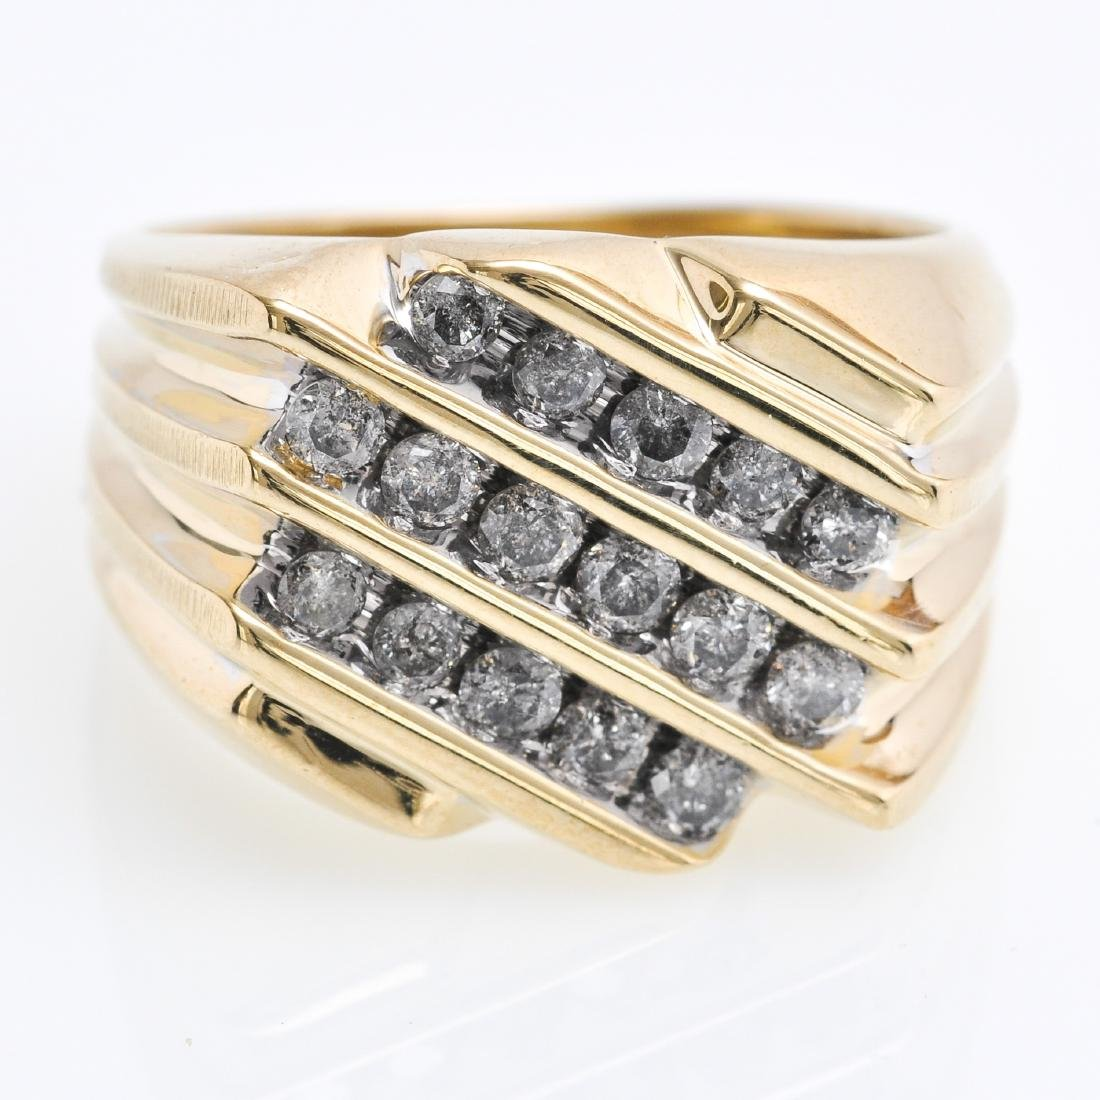 A 10KG Ladies Diamond Ring Approximately 1 CTW